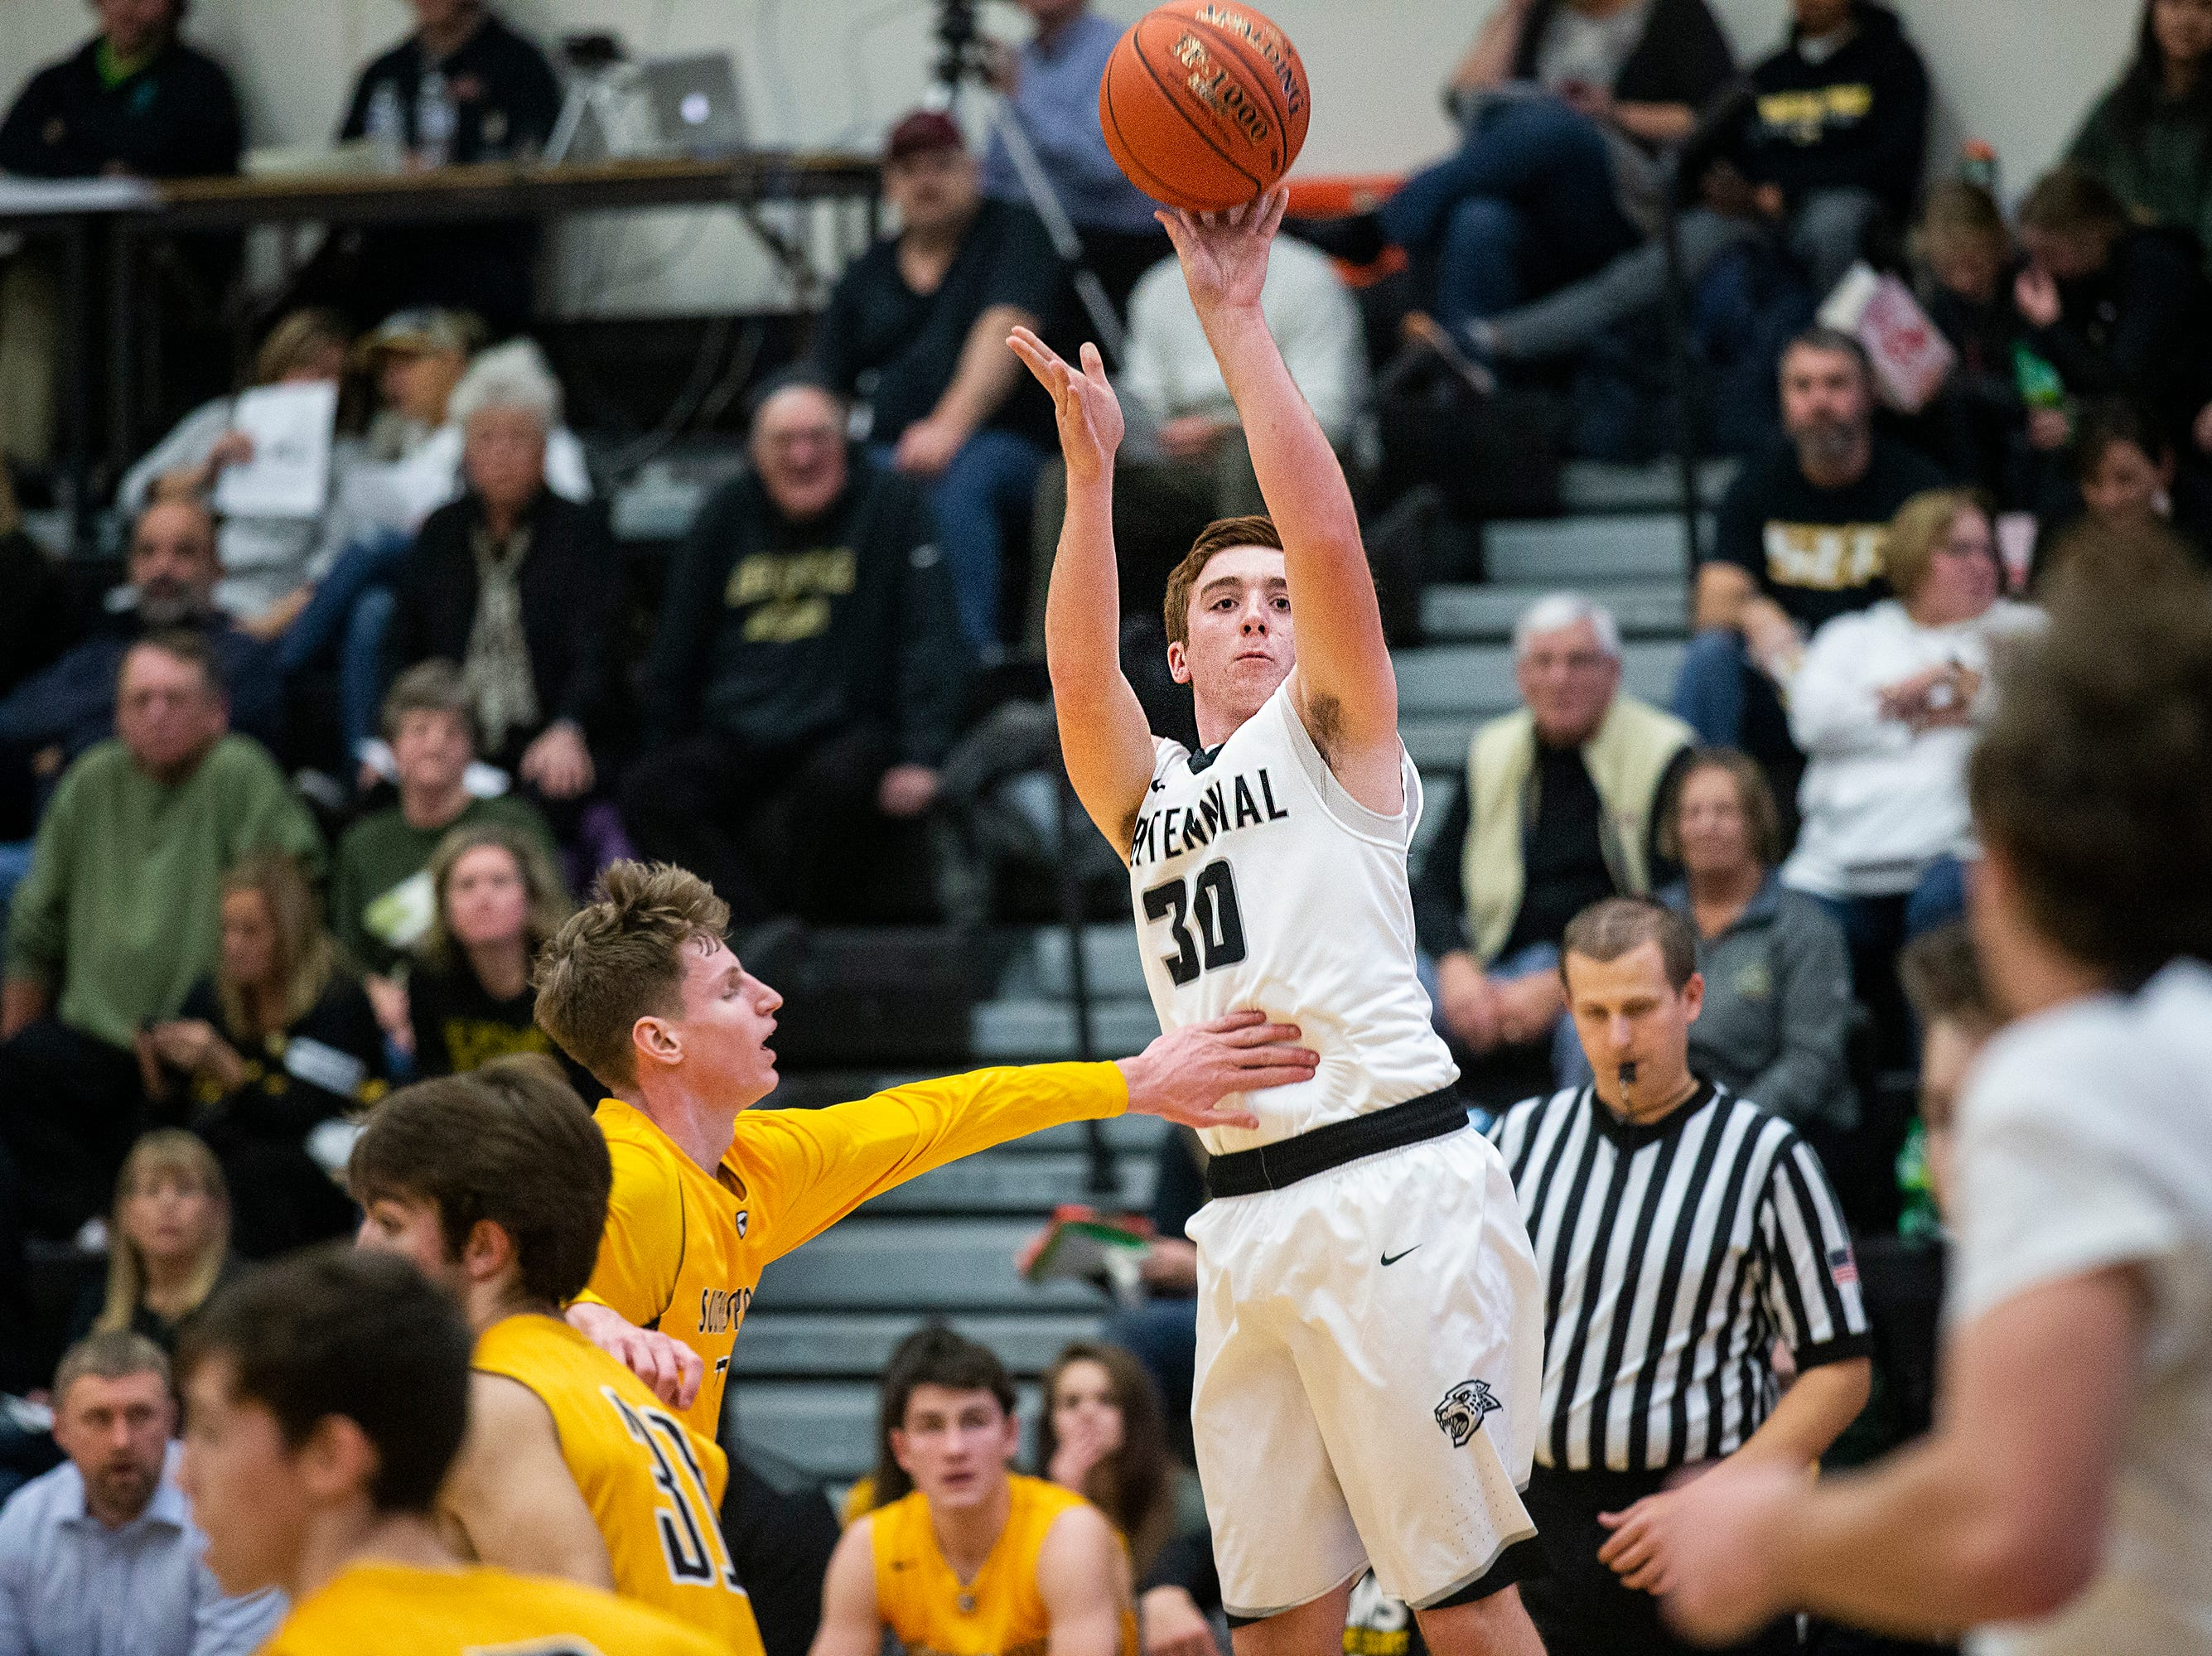 Centennial's Garret Severseike shoots the ball during the Southeast Polk vs. Ankeny Centennial boy's basketball game on Tuesday, Nov. 27, 2018, at Ankeny Centennial High School.